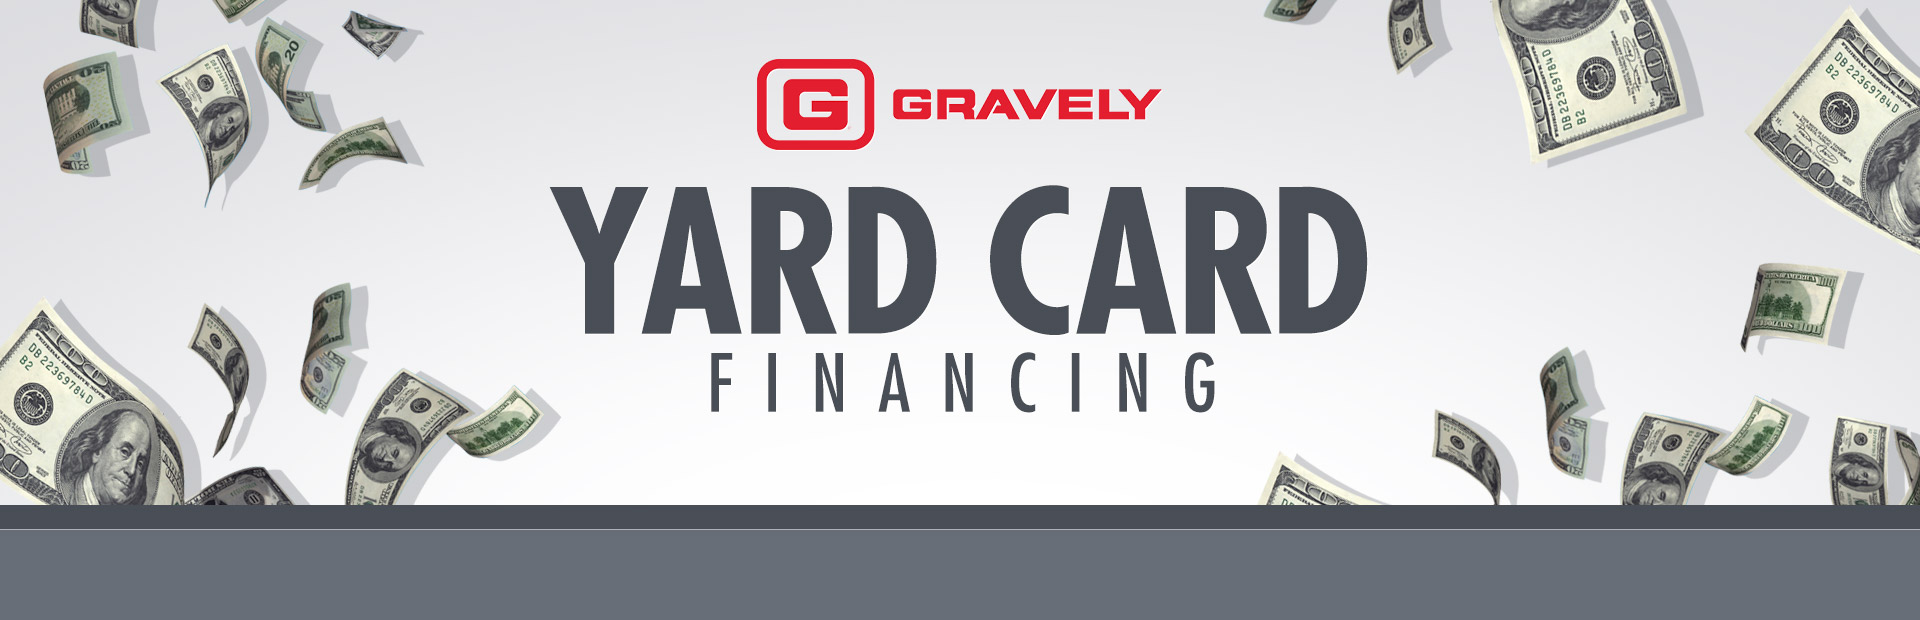 Gravely: Yard Card Financing